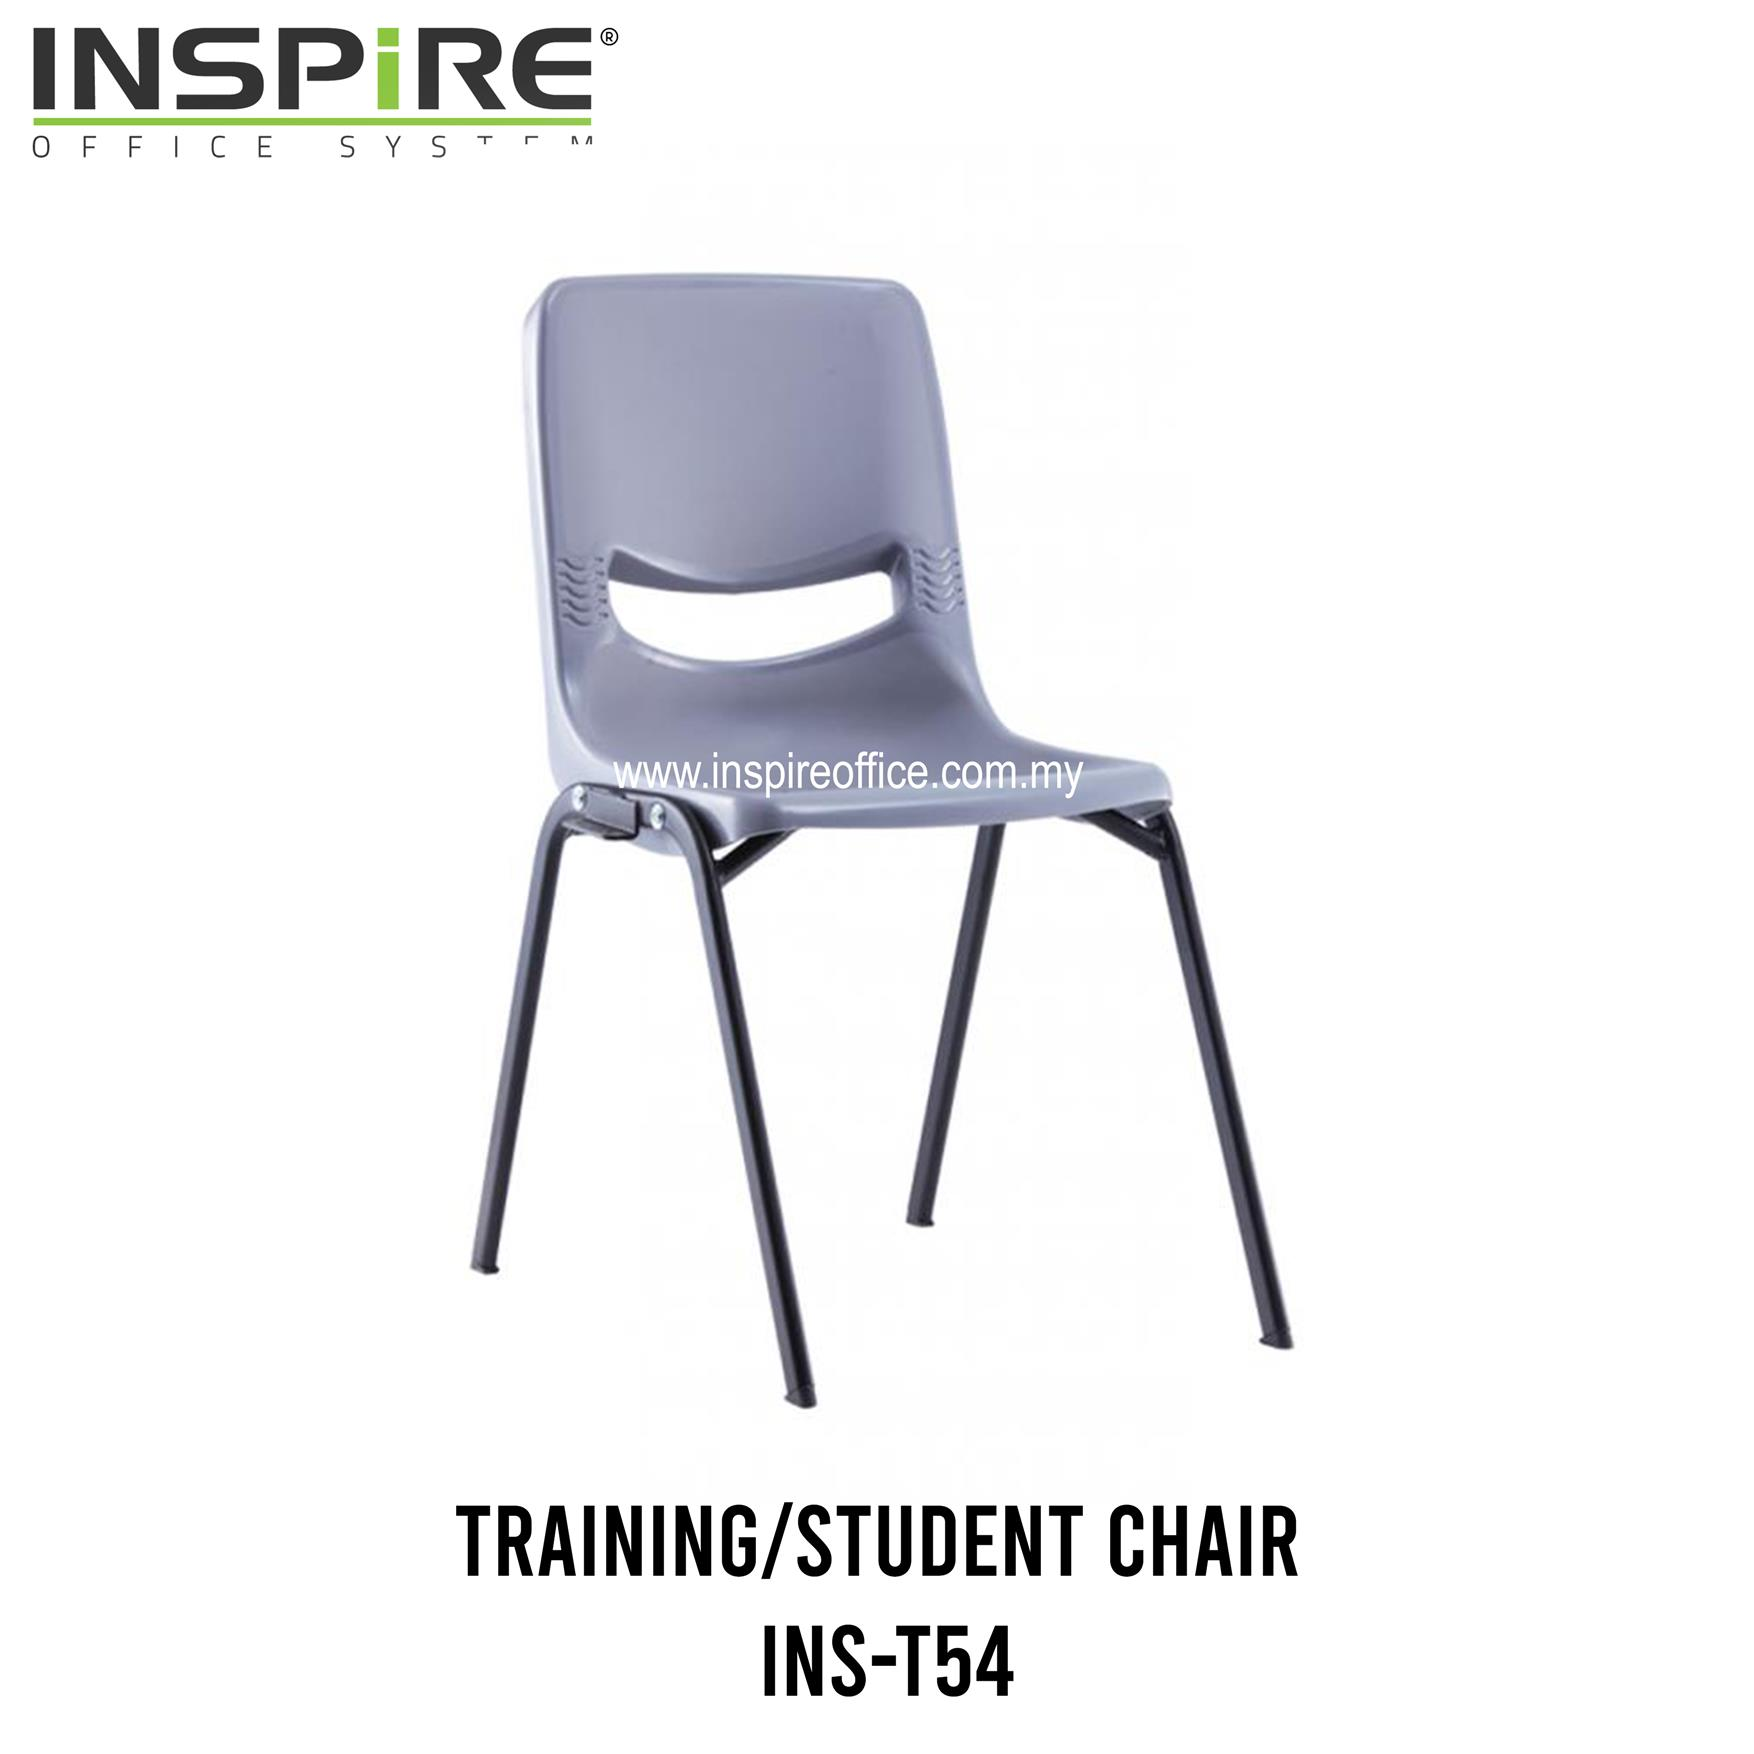 INS-T54 Training/Student Chair